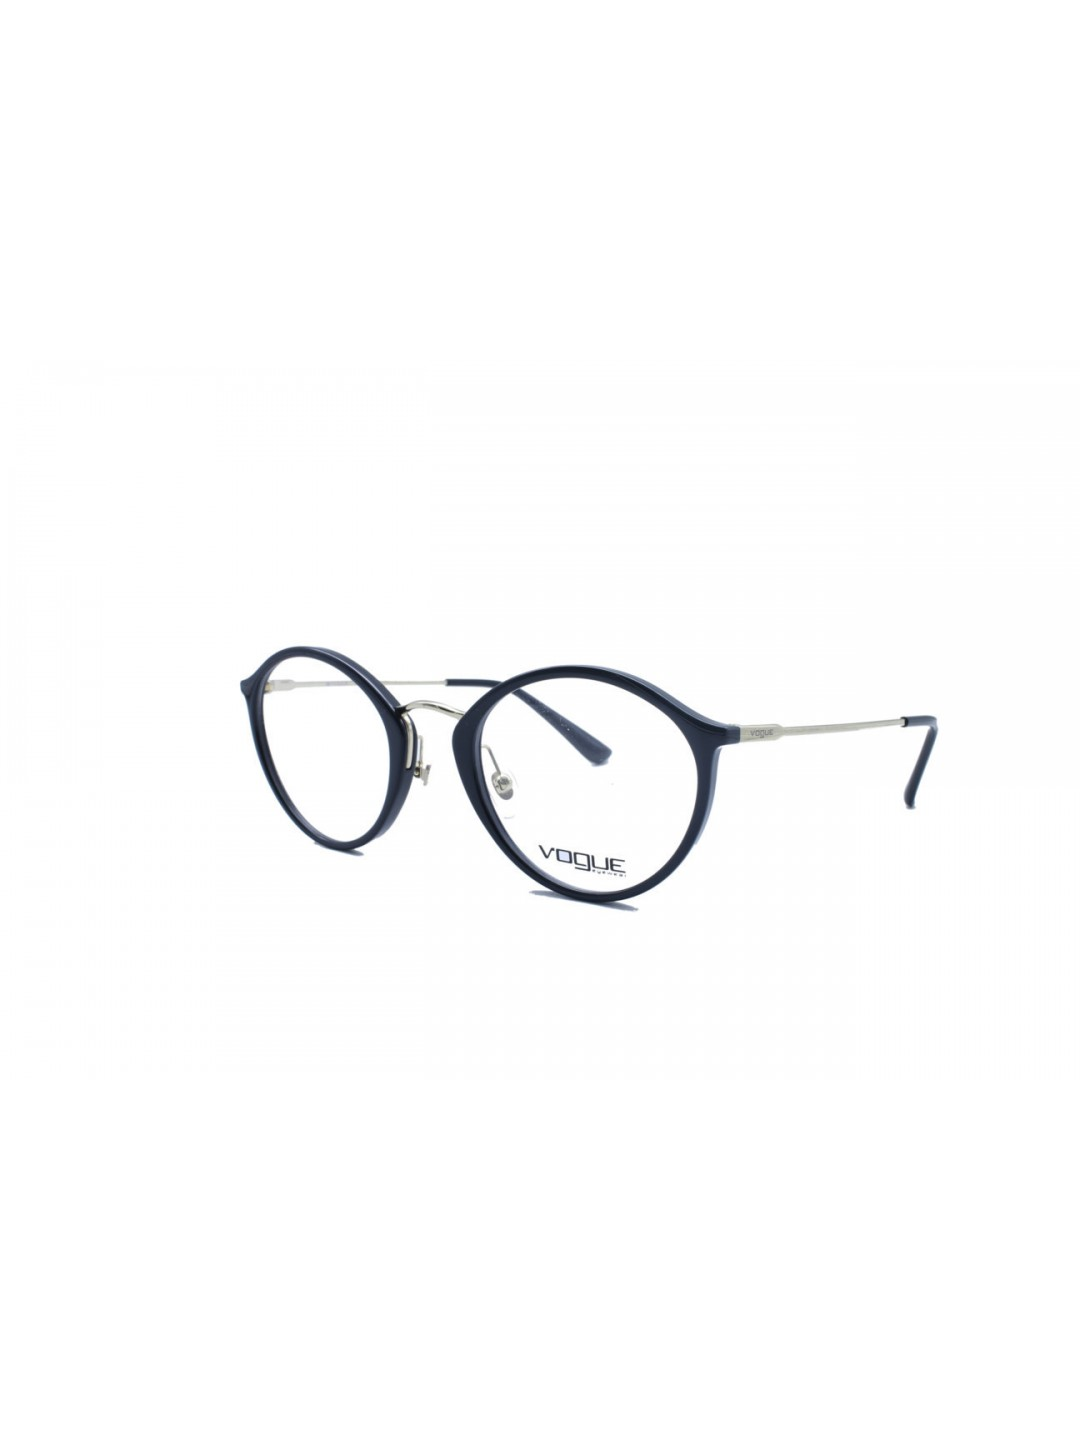 Vogue VO 5286 W44 Round Black Full Frame With Acetate